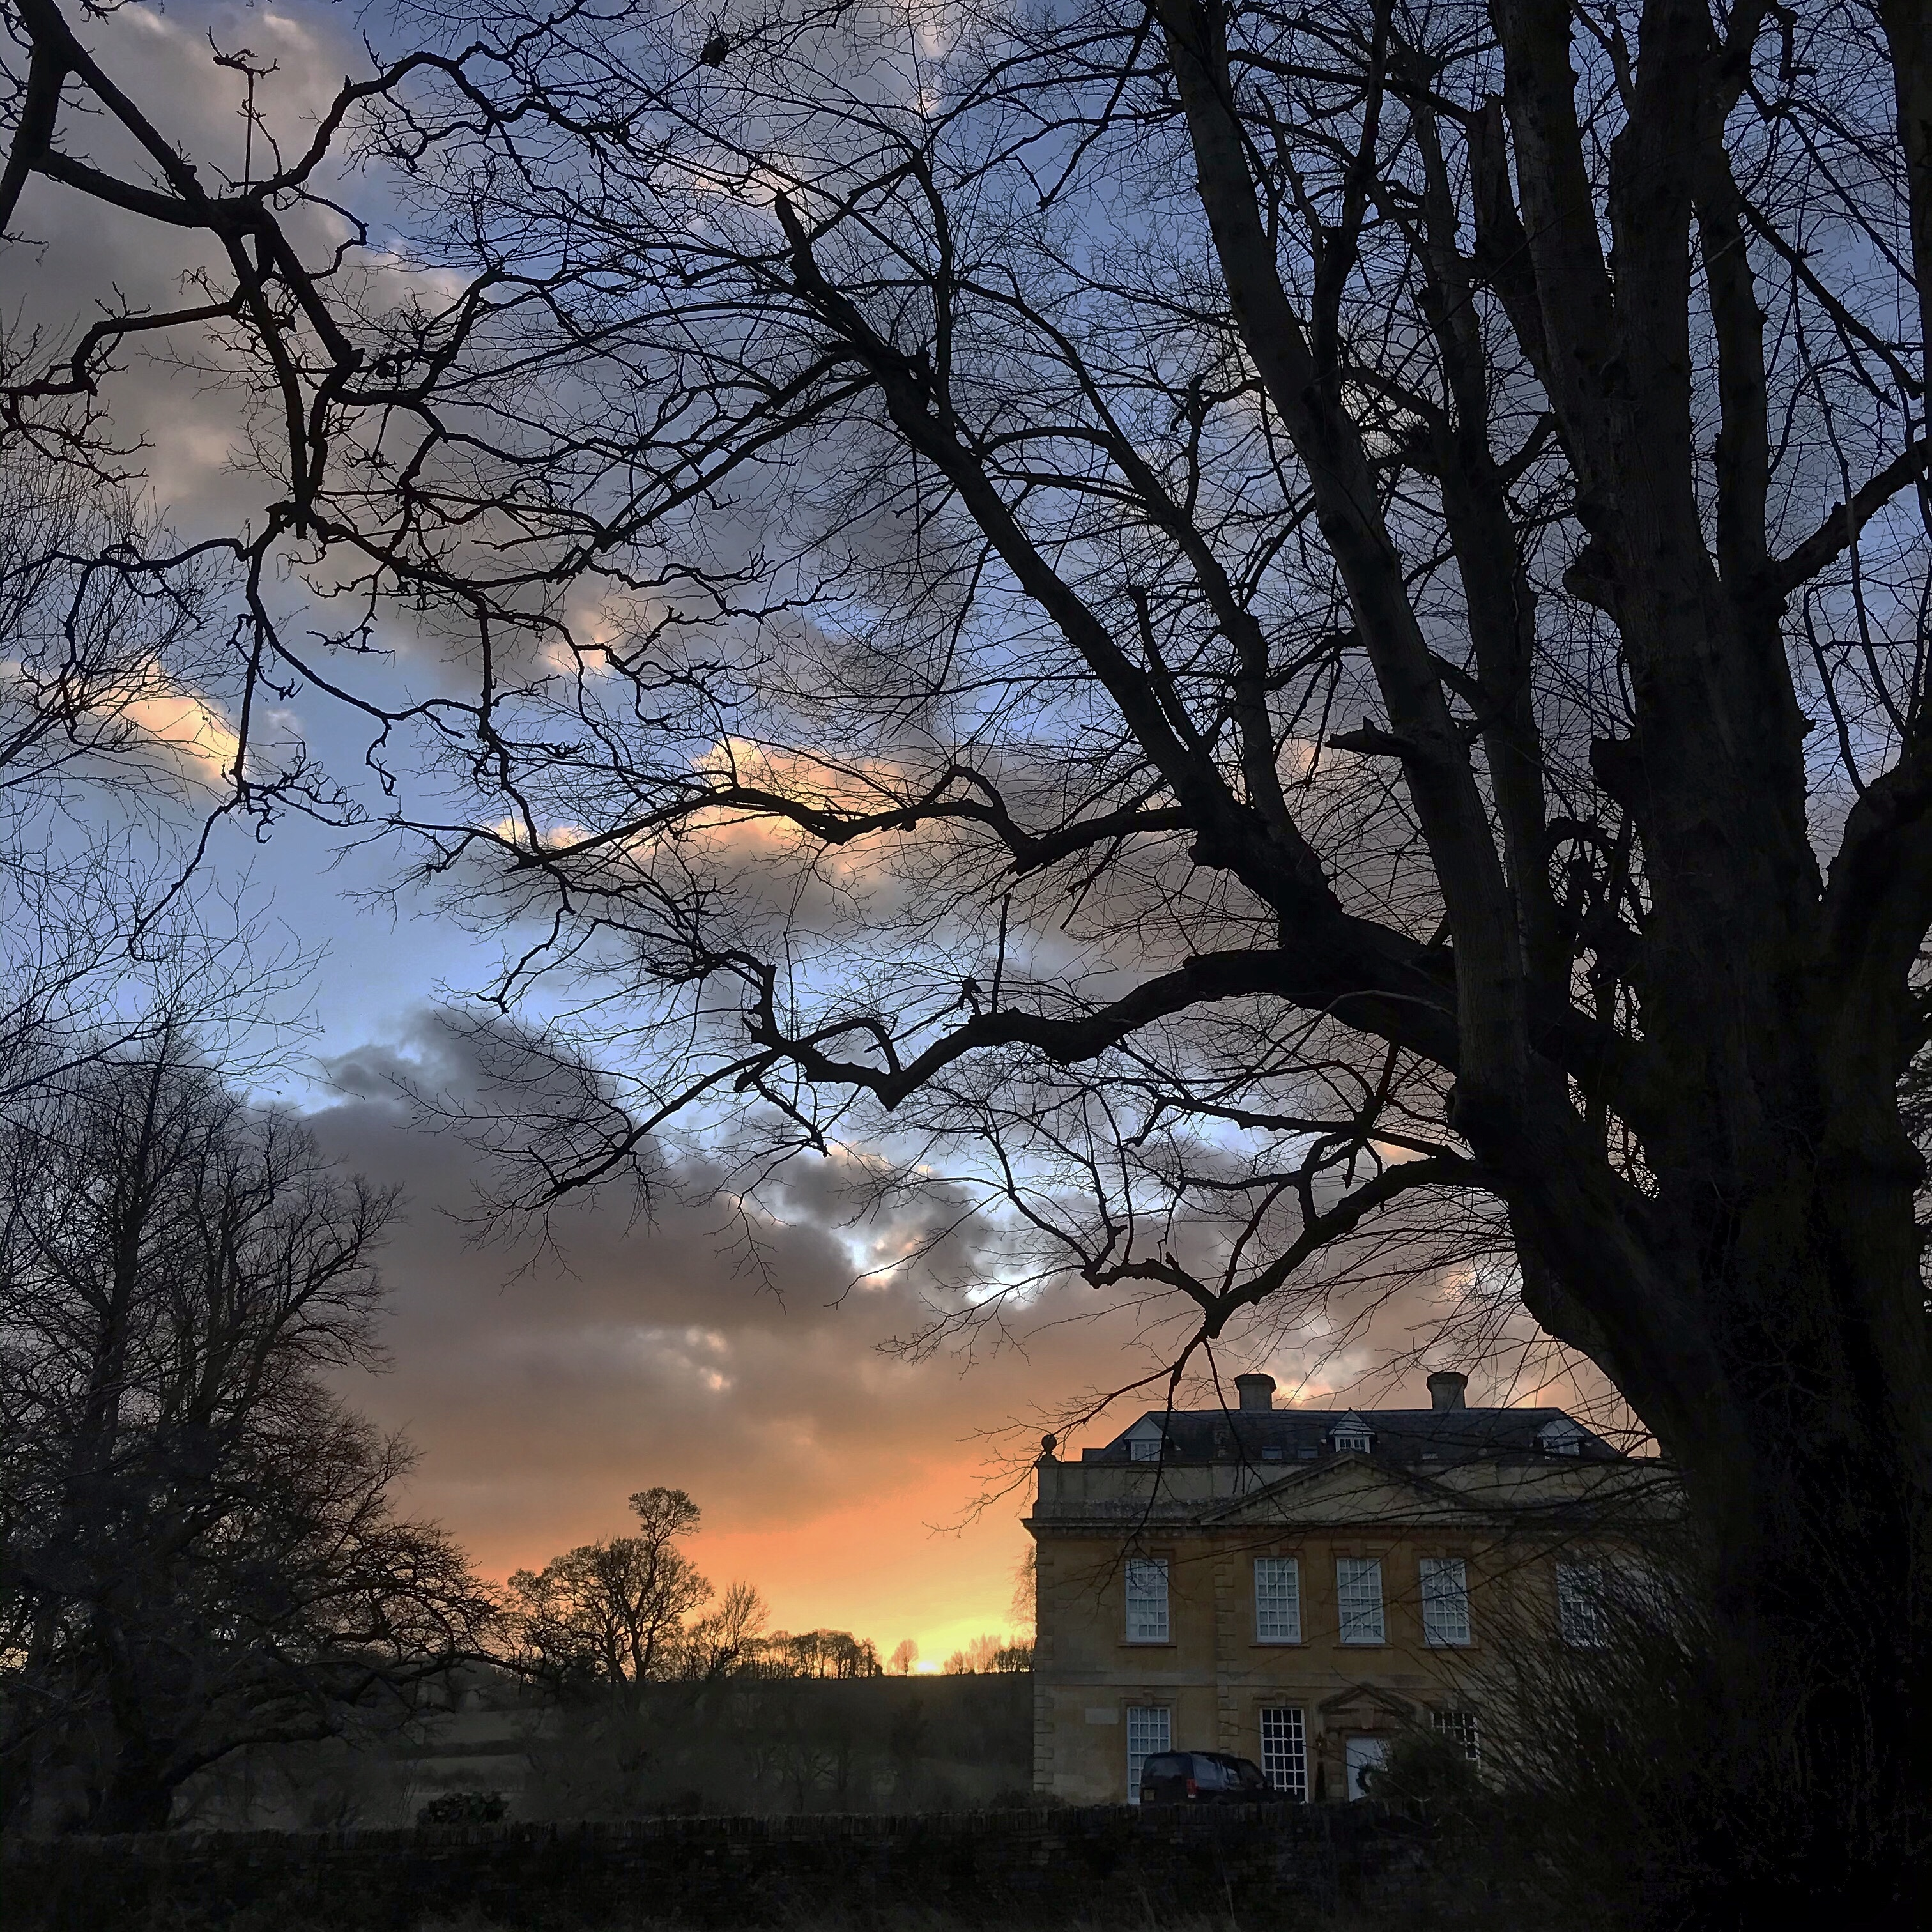 The sun setting behind Broadwell Manor in the Cotswolds, sunset